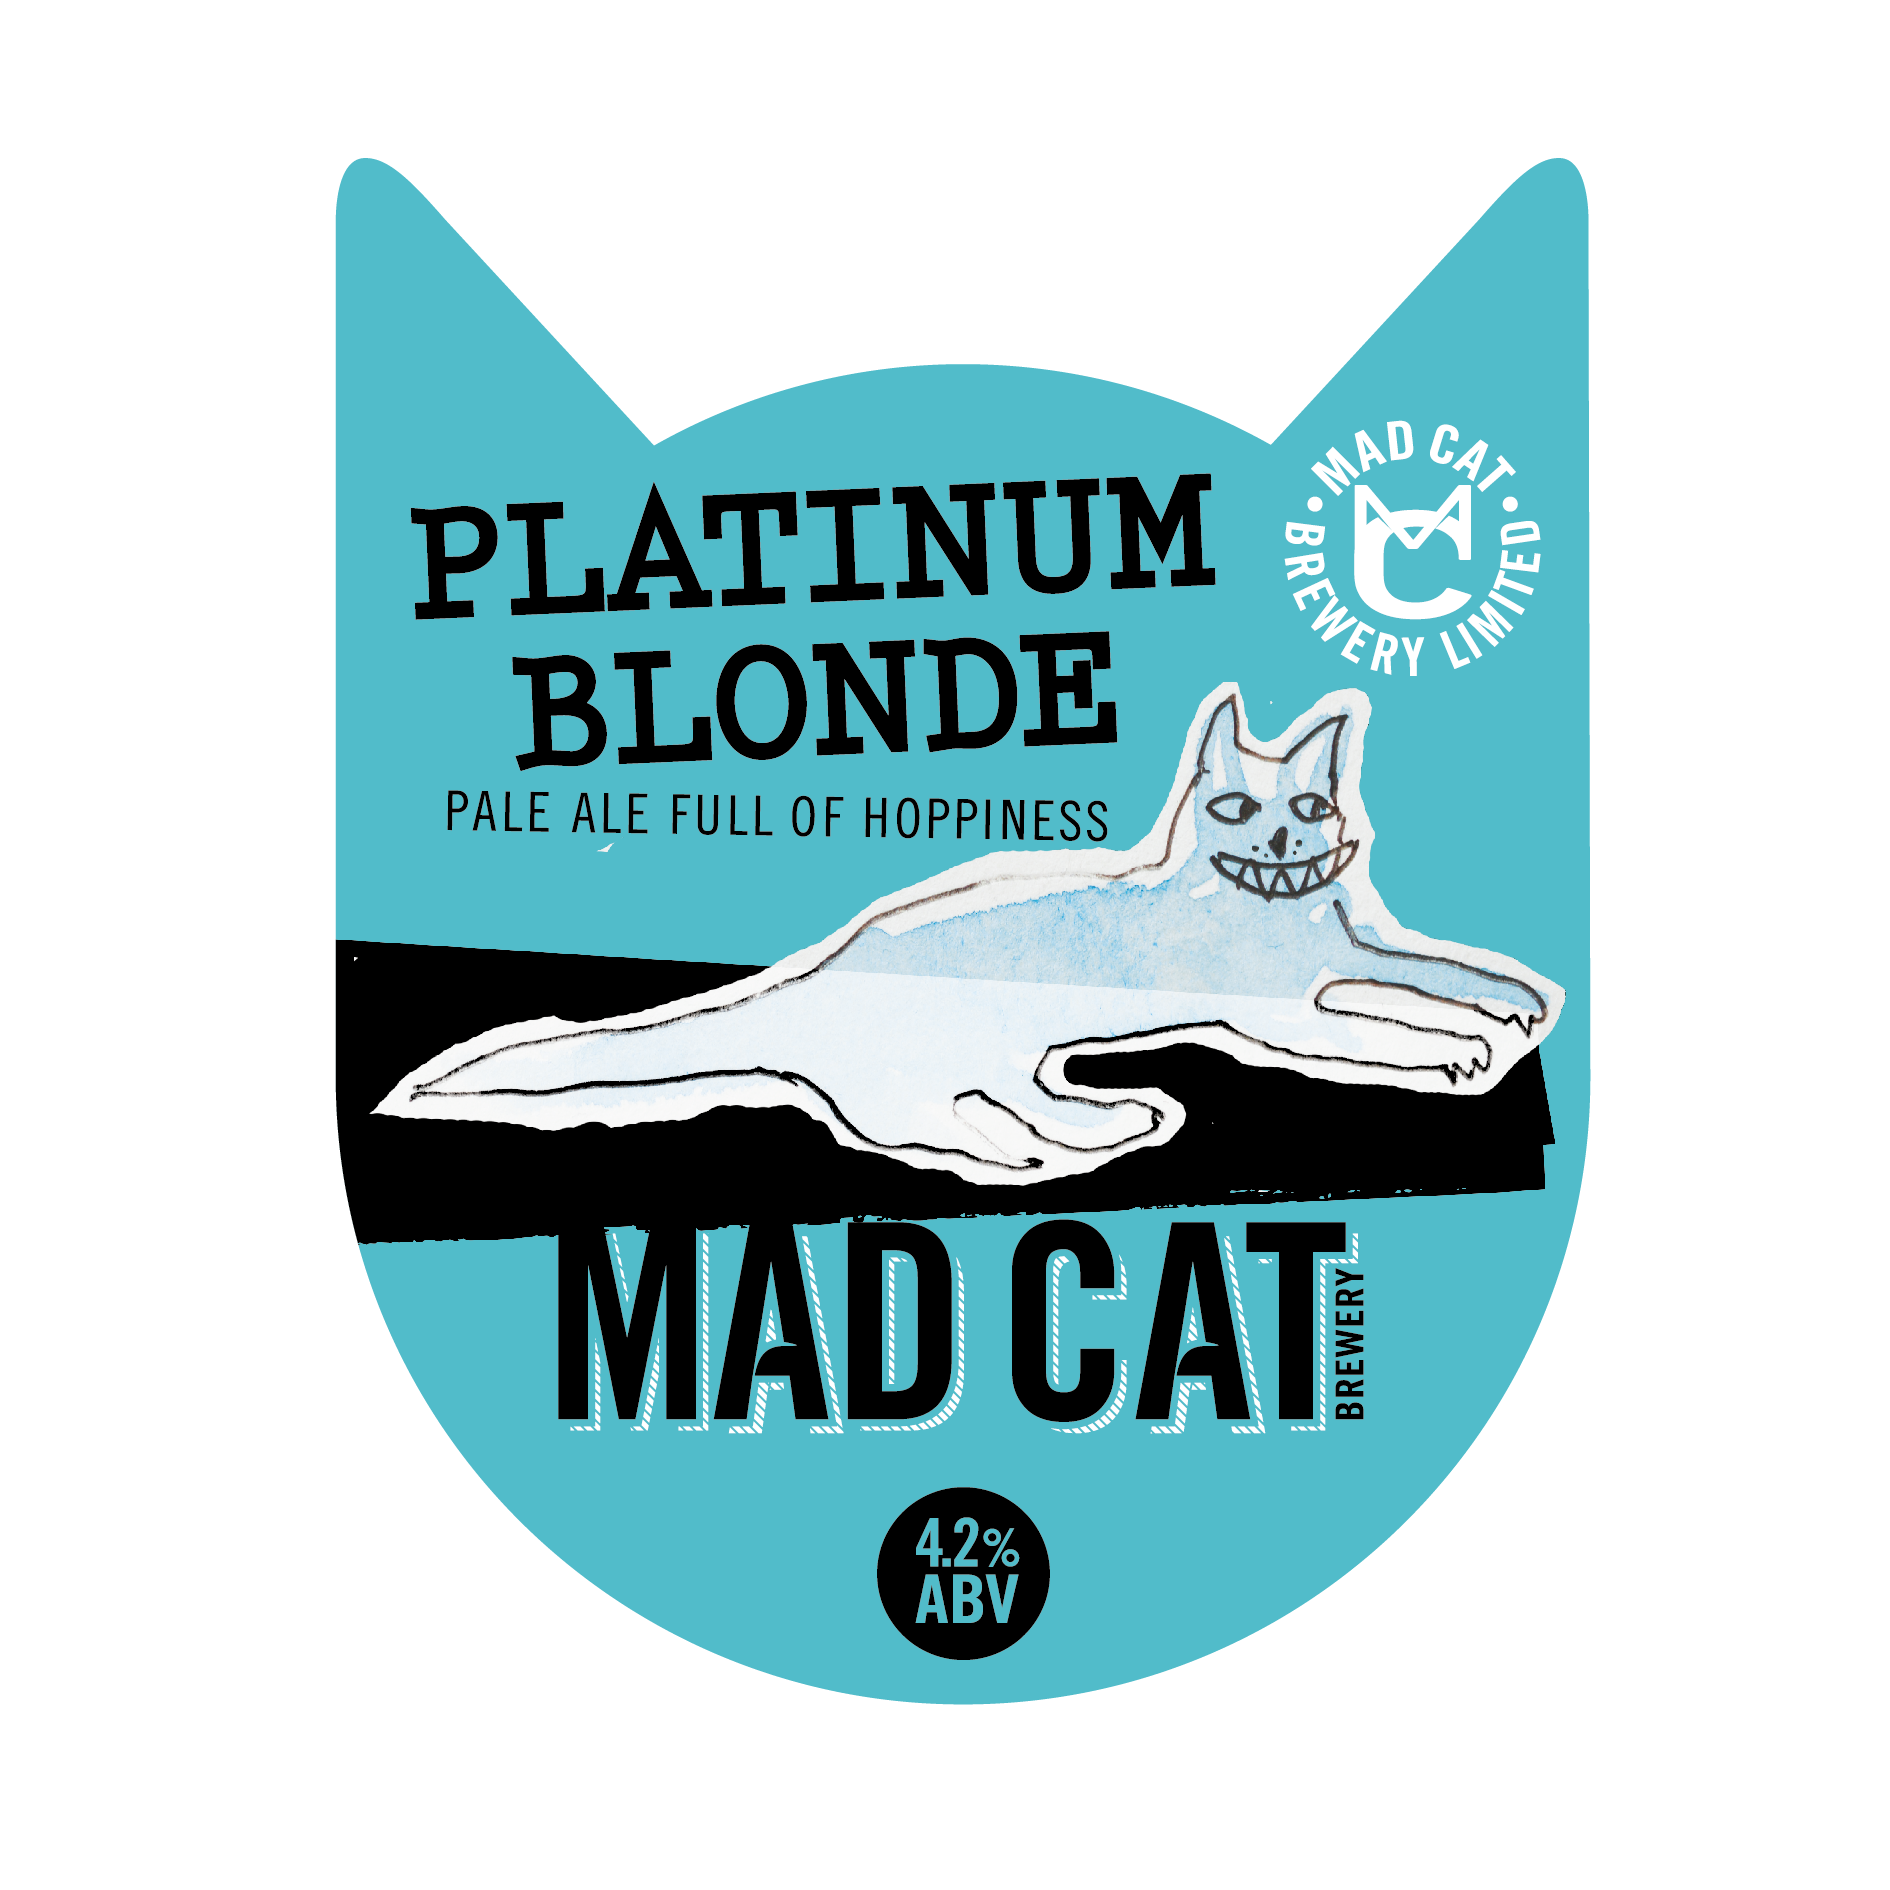 Platinum Blonde pump clip mad cat ales